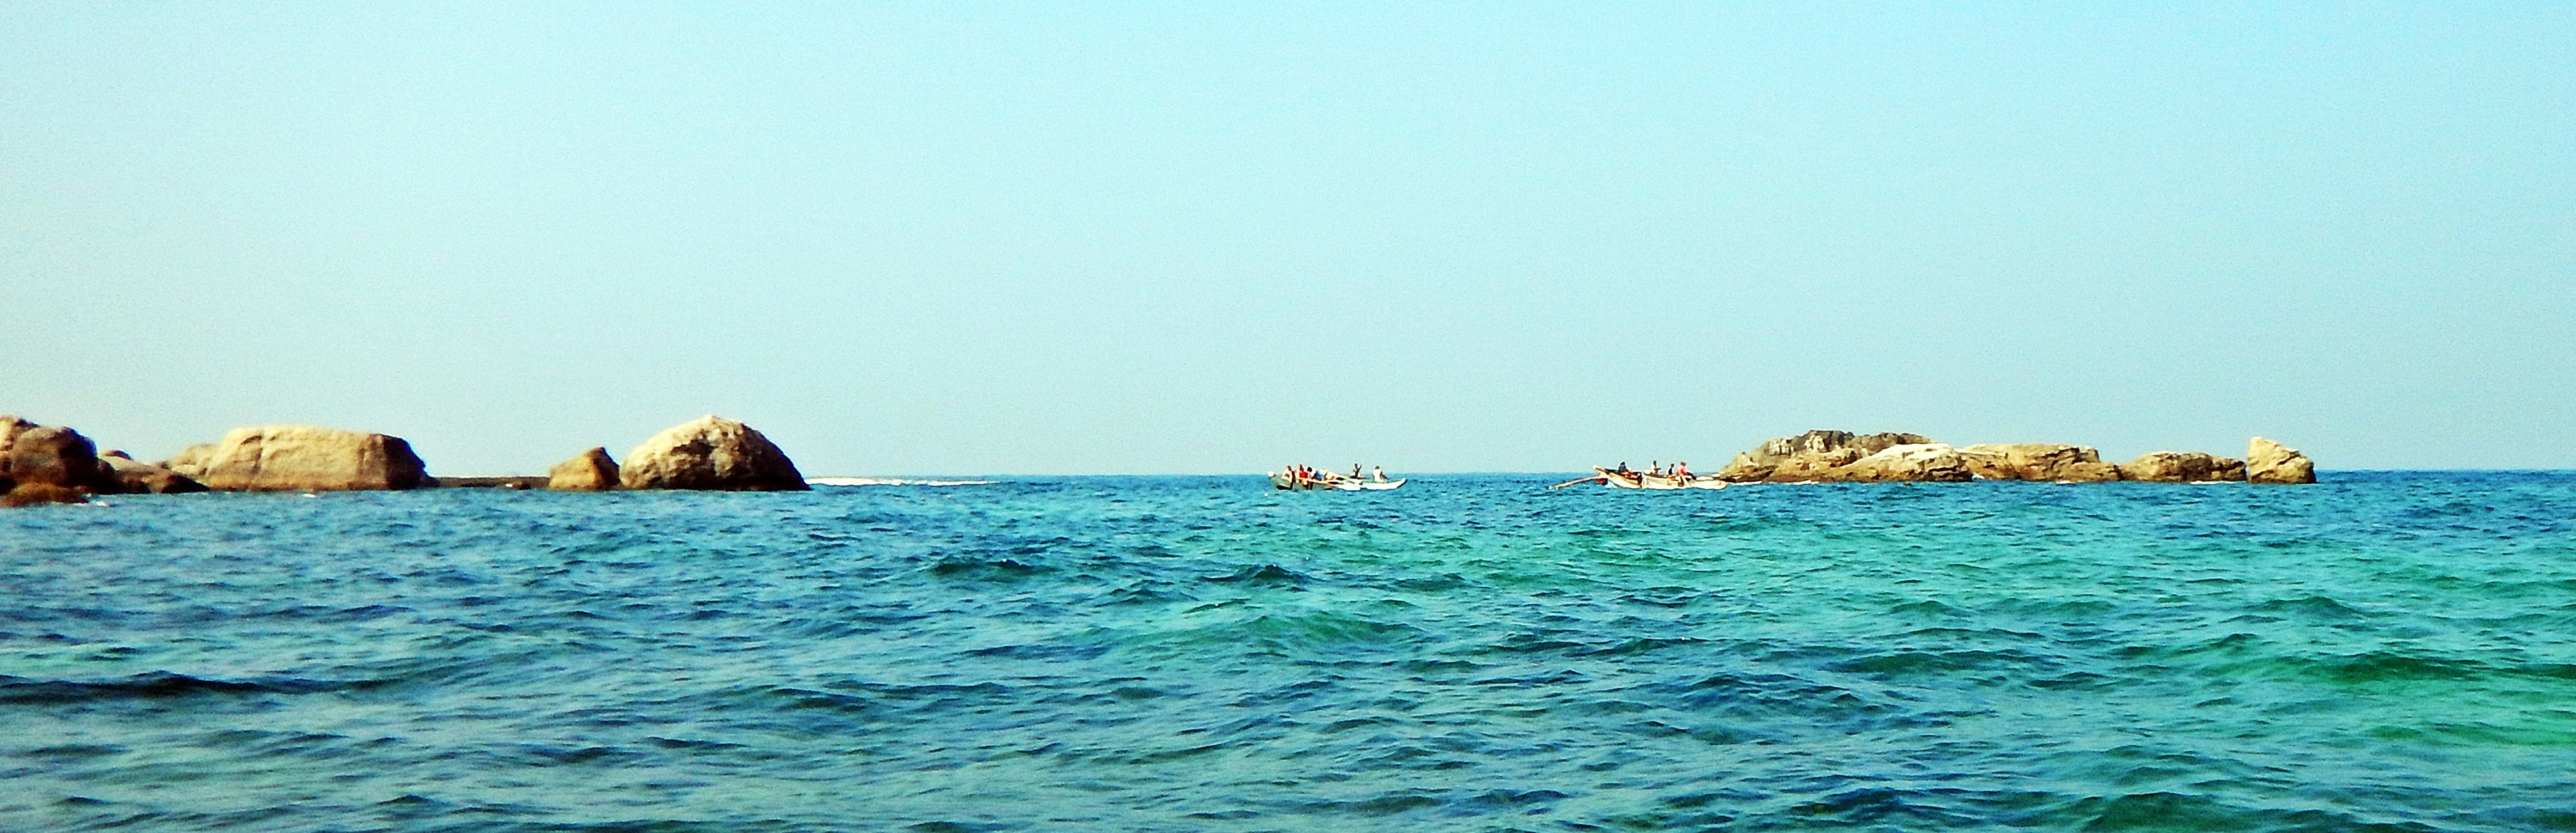 Snorkelers getting a ride, Hikkaduwa